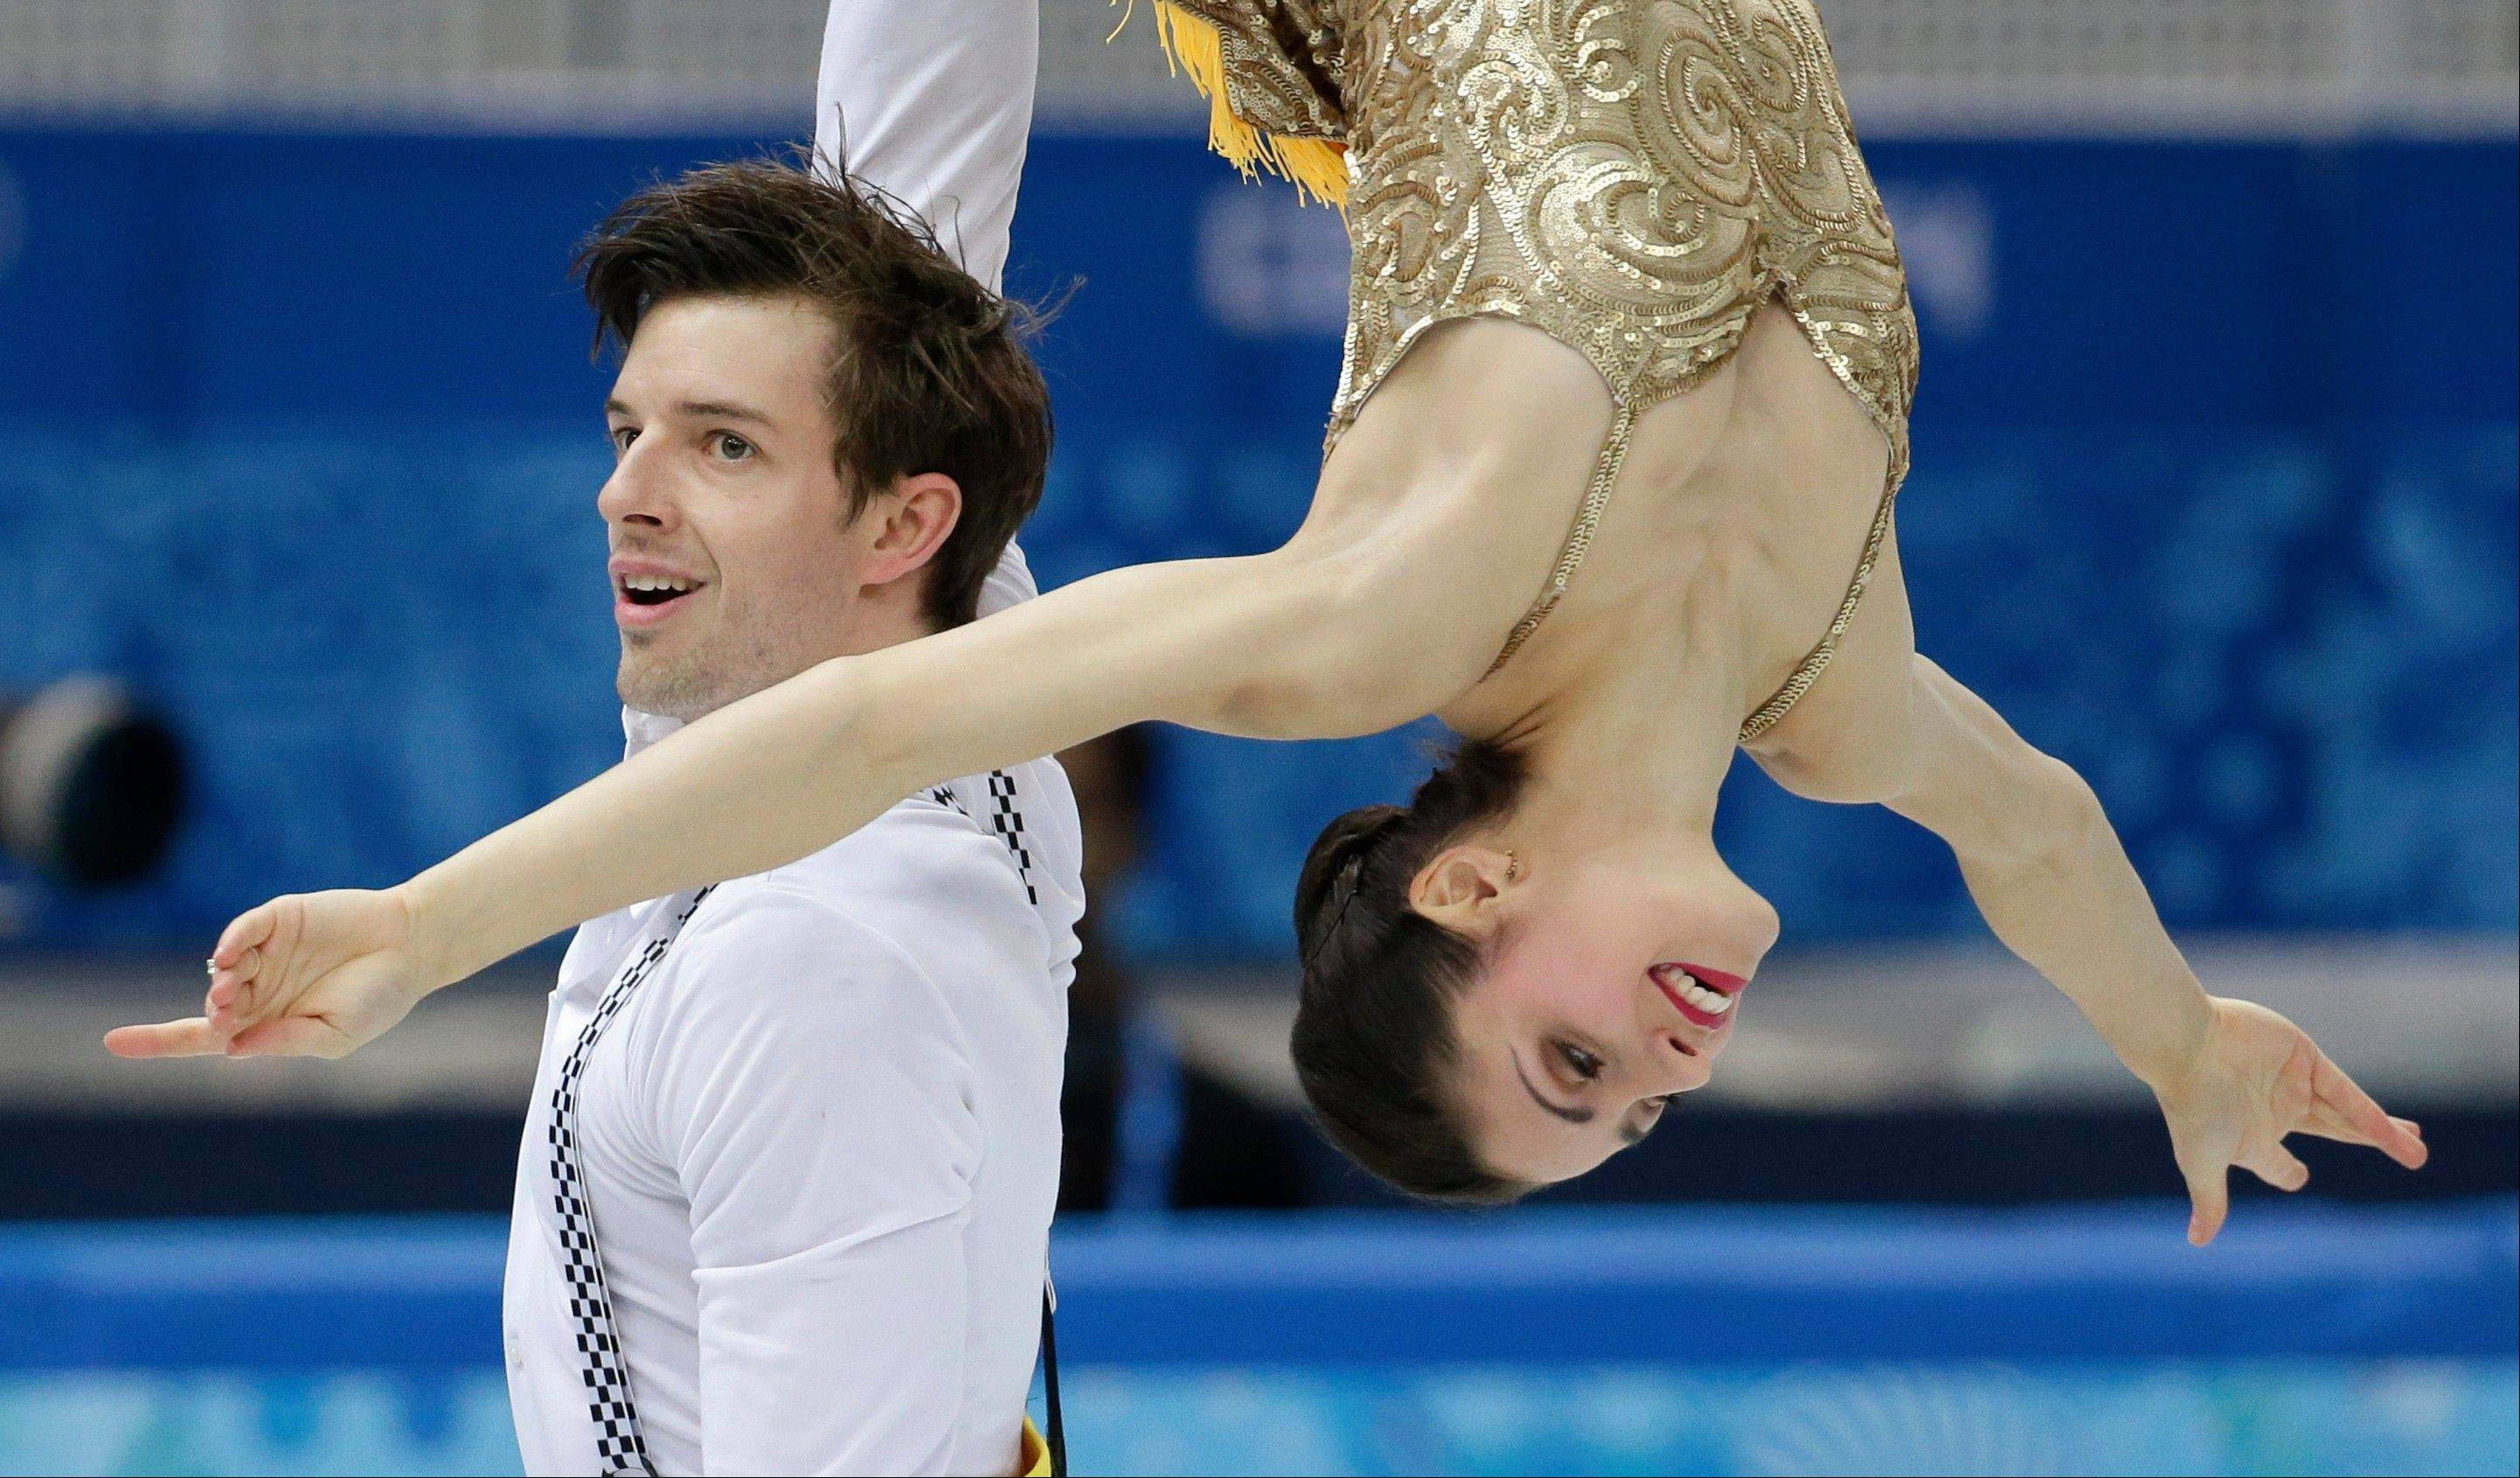 Stefania Berton and Ondrej Hotarek of Italy compete in the team pairs short program figure skating competition at the Iceberg Skating Palace during the 2014 Winter Olympics.